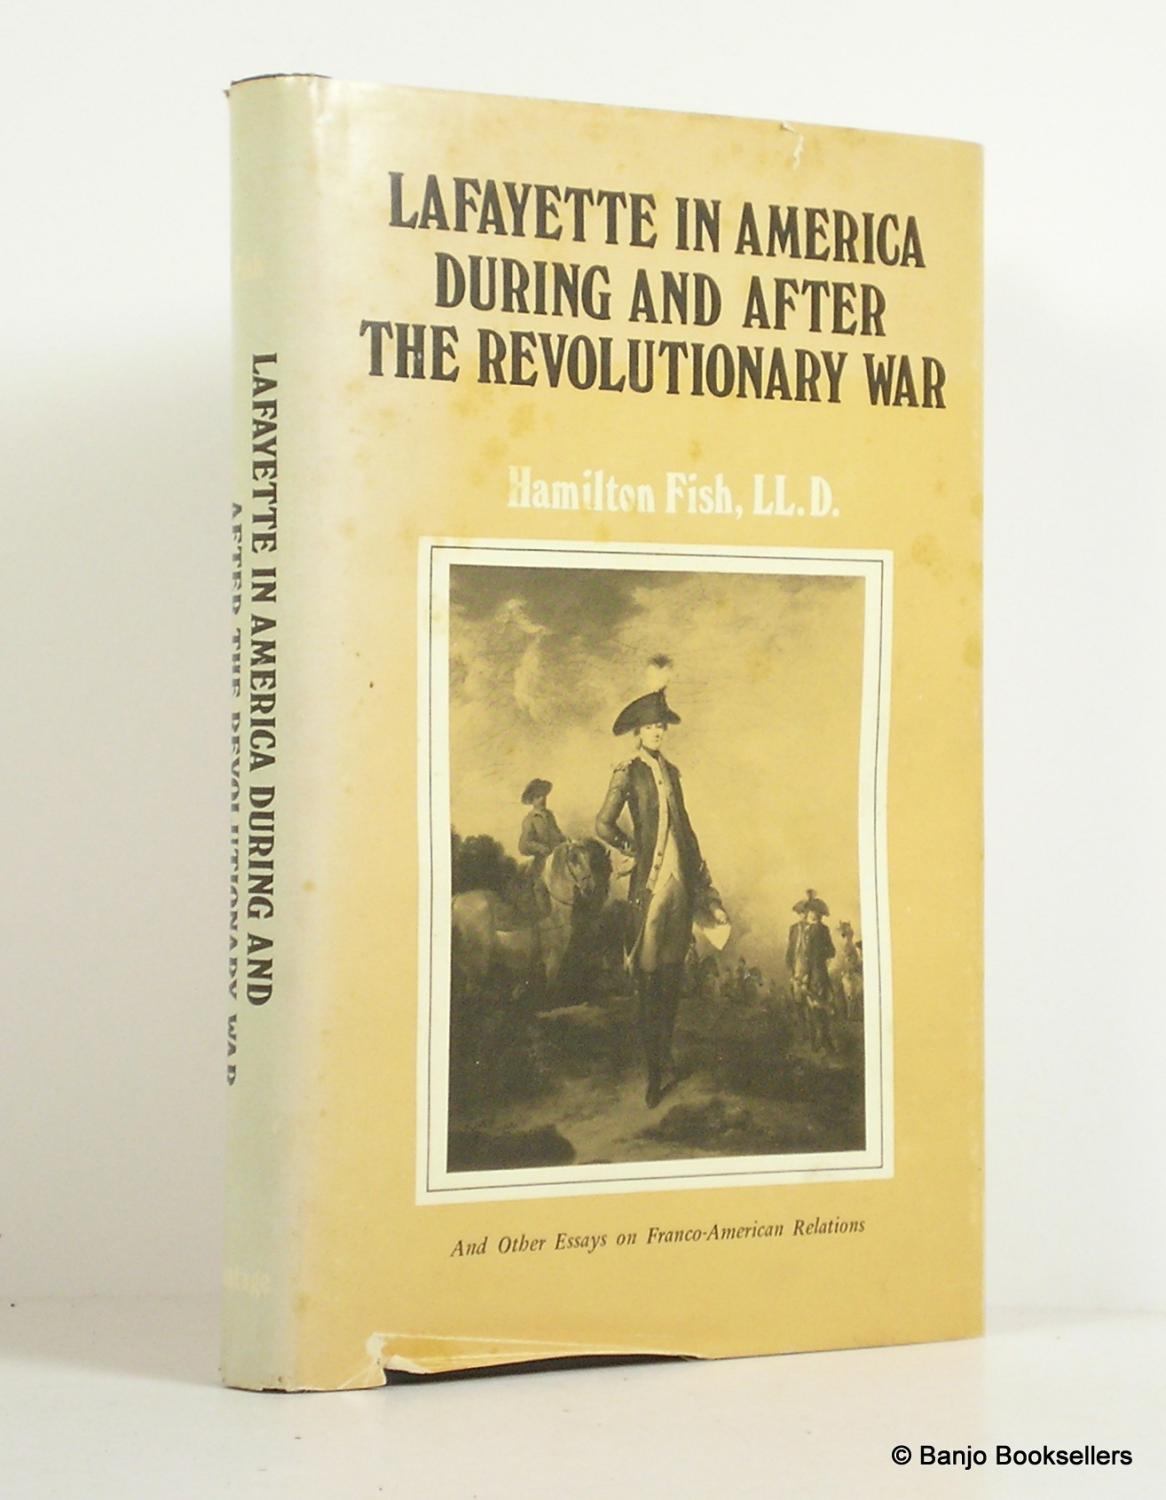 Graduating From High School Essay Lafayette In America During And After The Revolutionary War And Other Essays  On Francoamerican English Language Essay also What Is A Thesis In An Essay Lafayette In America During And After The Revolutionary War And  Business Plan Writers In Arlington Tx